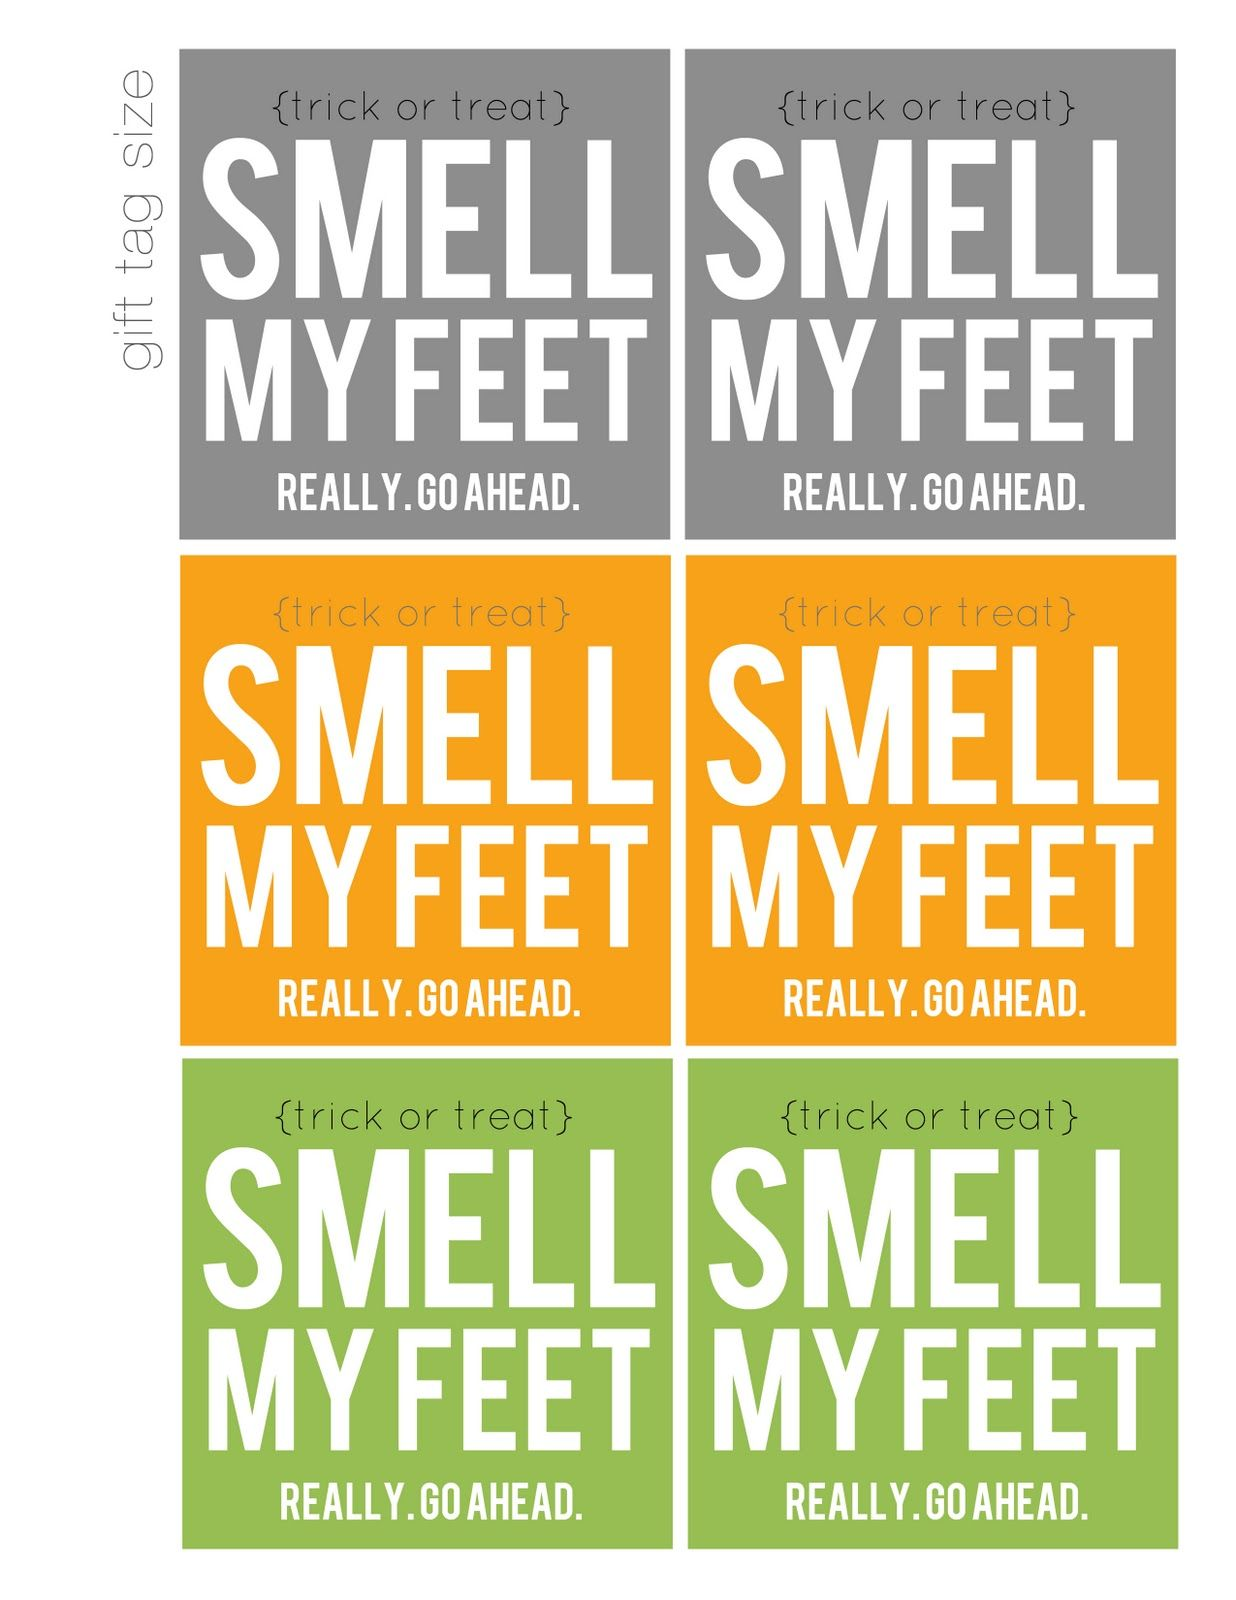 Smell my feet free printable halloween gift school parties it seems like halloween candy fills the store aisles earlier and earlier every year and without fail every year i buy our candy early so we can eat it all negle Gallery